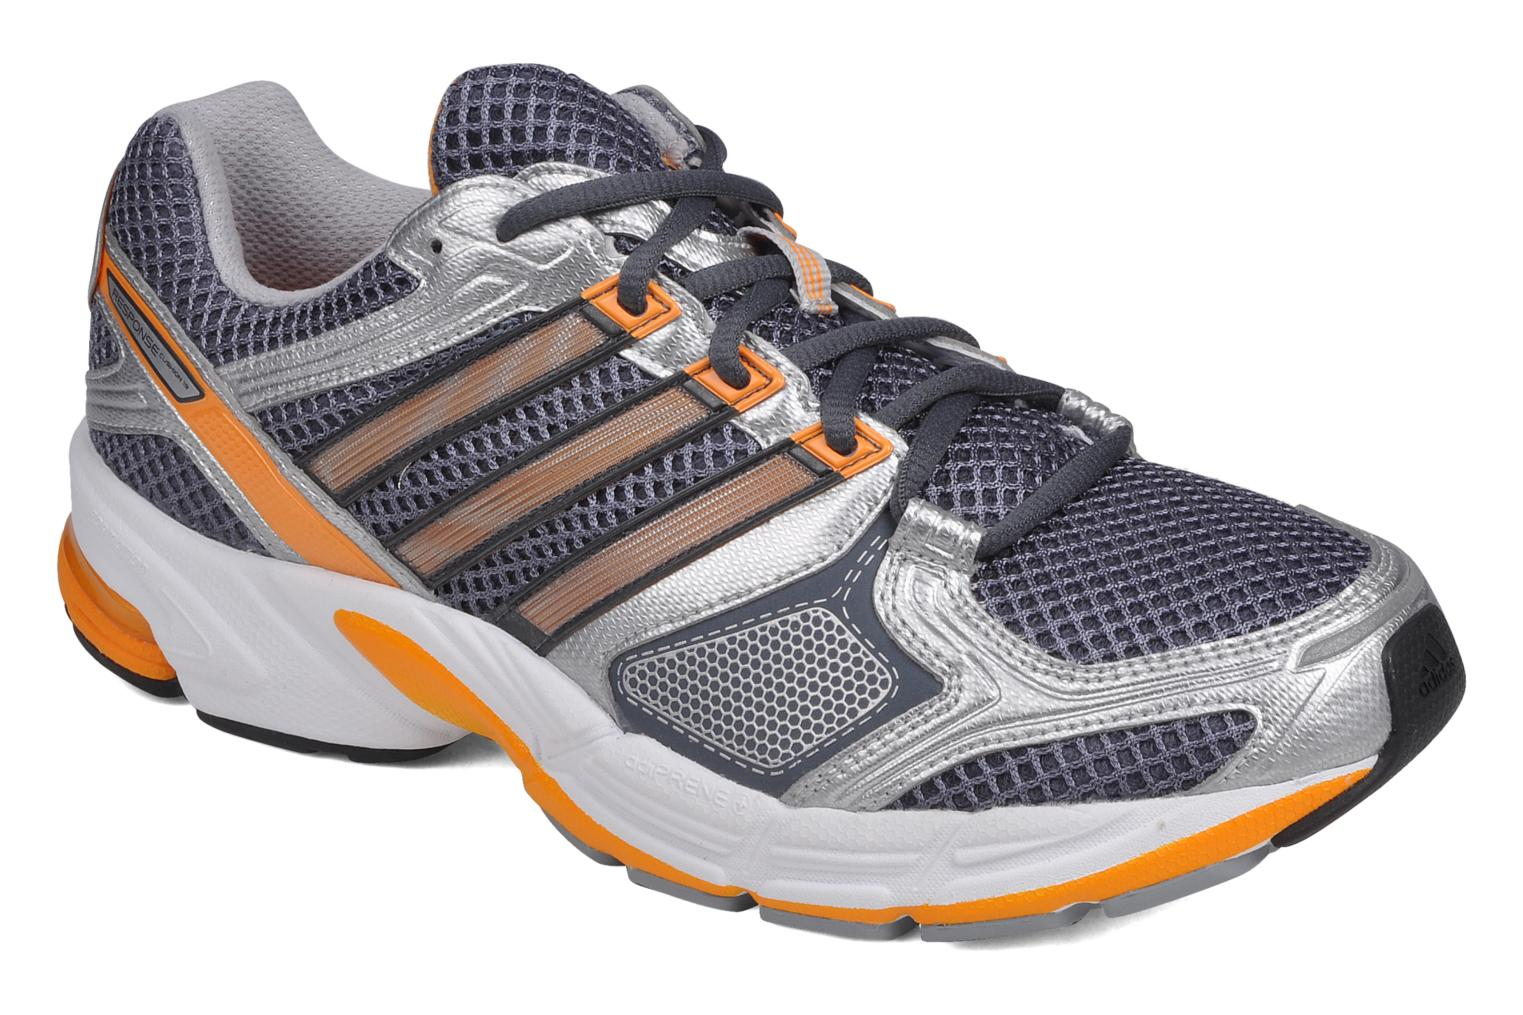 05bb9bc6301a04 adidas Response Cushion 22 W adidas rsp cushion femme chaussures de course